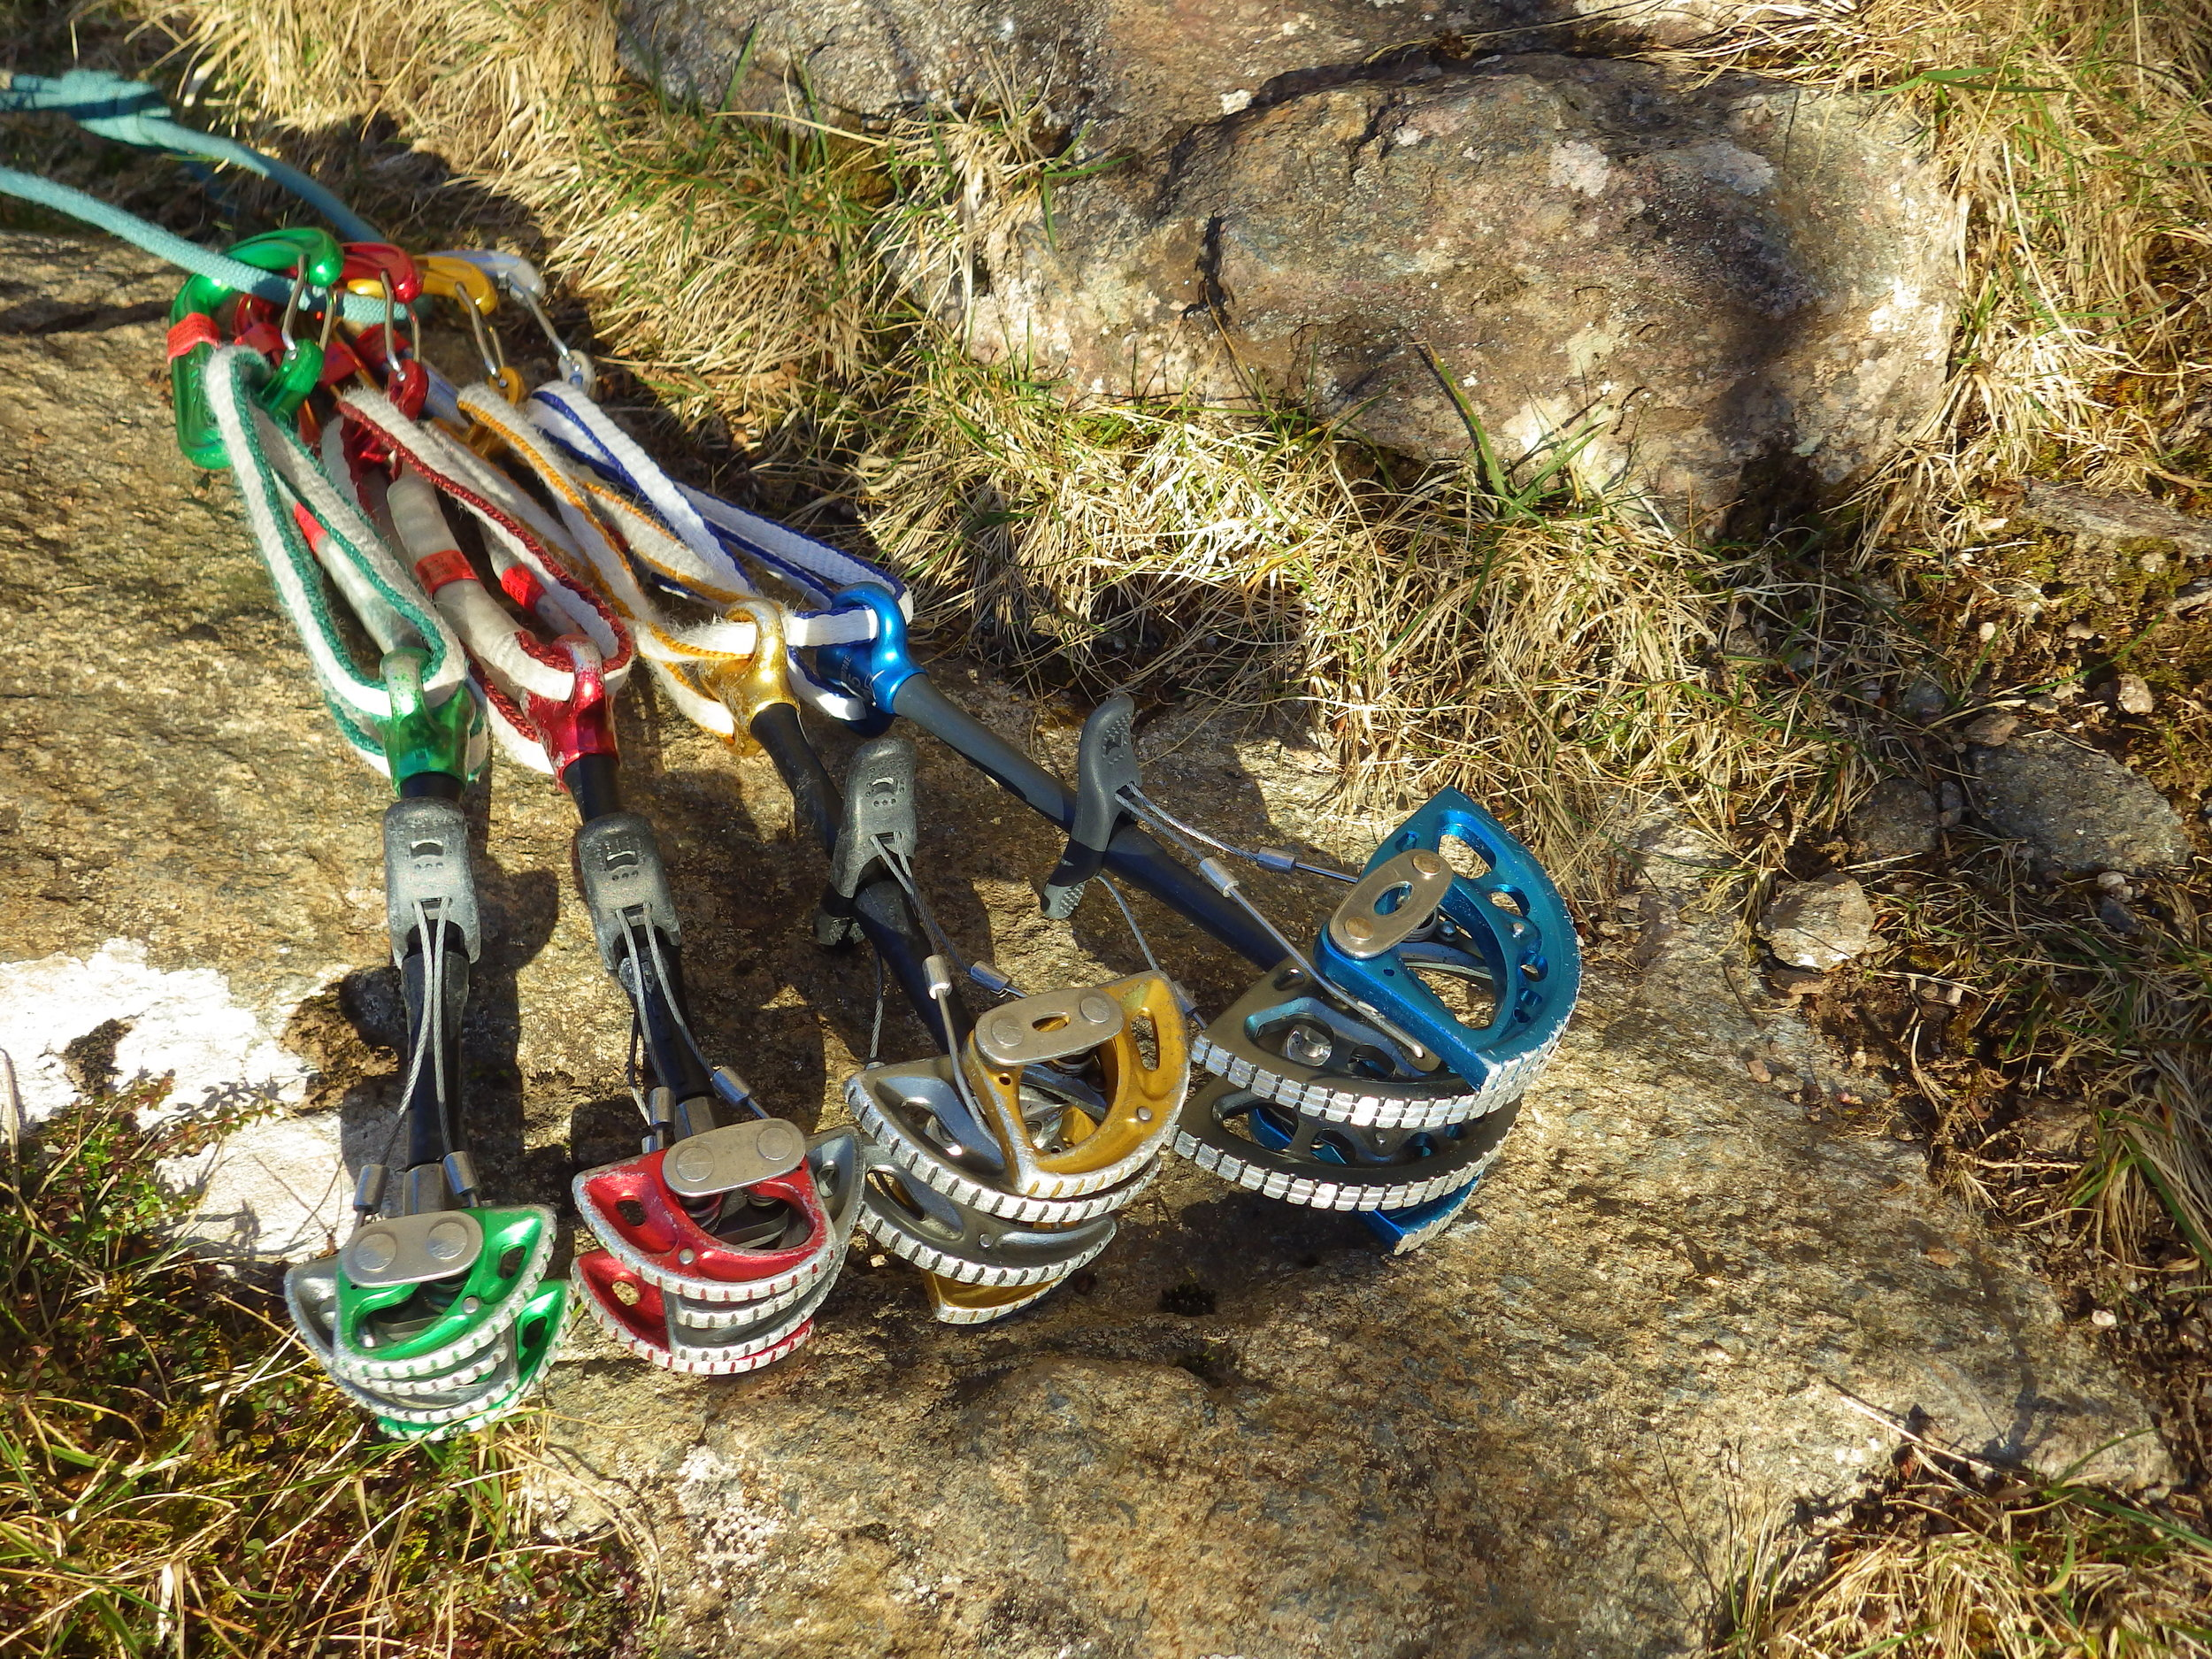 Size 2,3,4,5, DMM Dragon Cams on colour coded wiregate carabiners